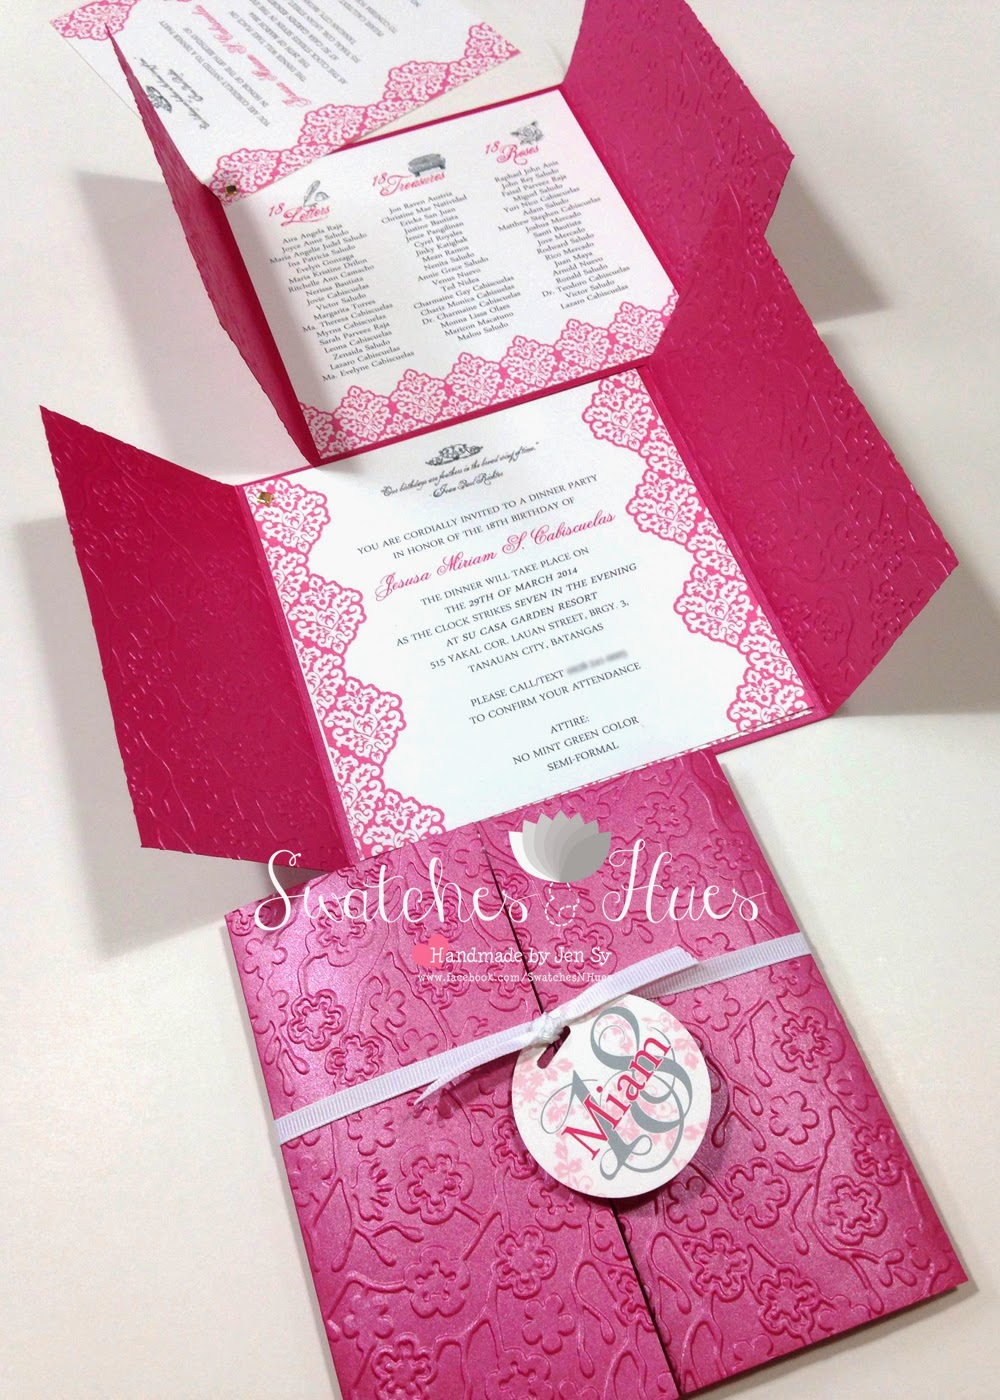 Swatches hues handmade with tlc princess theme gate fold debut here is a gate fold invitation for an 18th birthdaydebut party front panels were embossed for a classy look pages were held together with a gold brad stopboris Choice Image